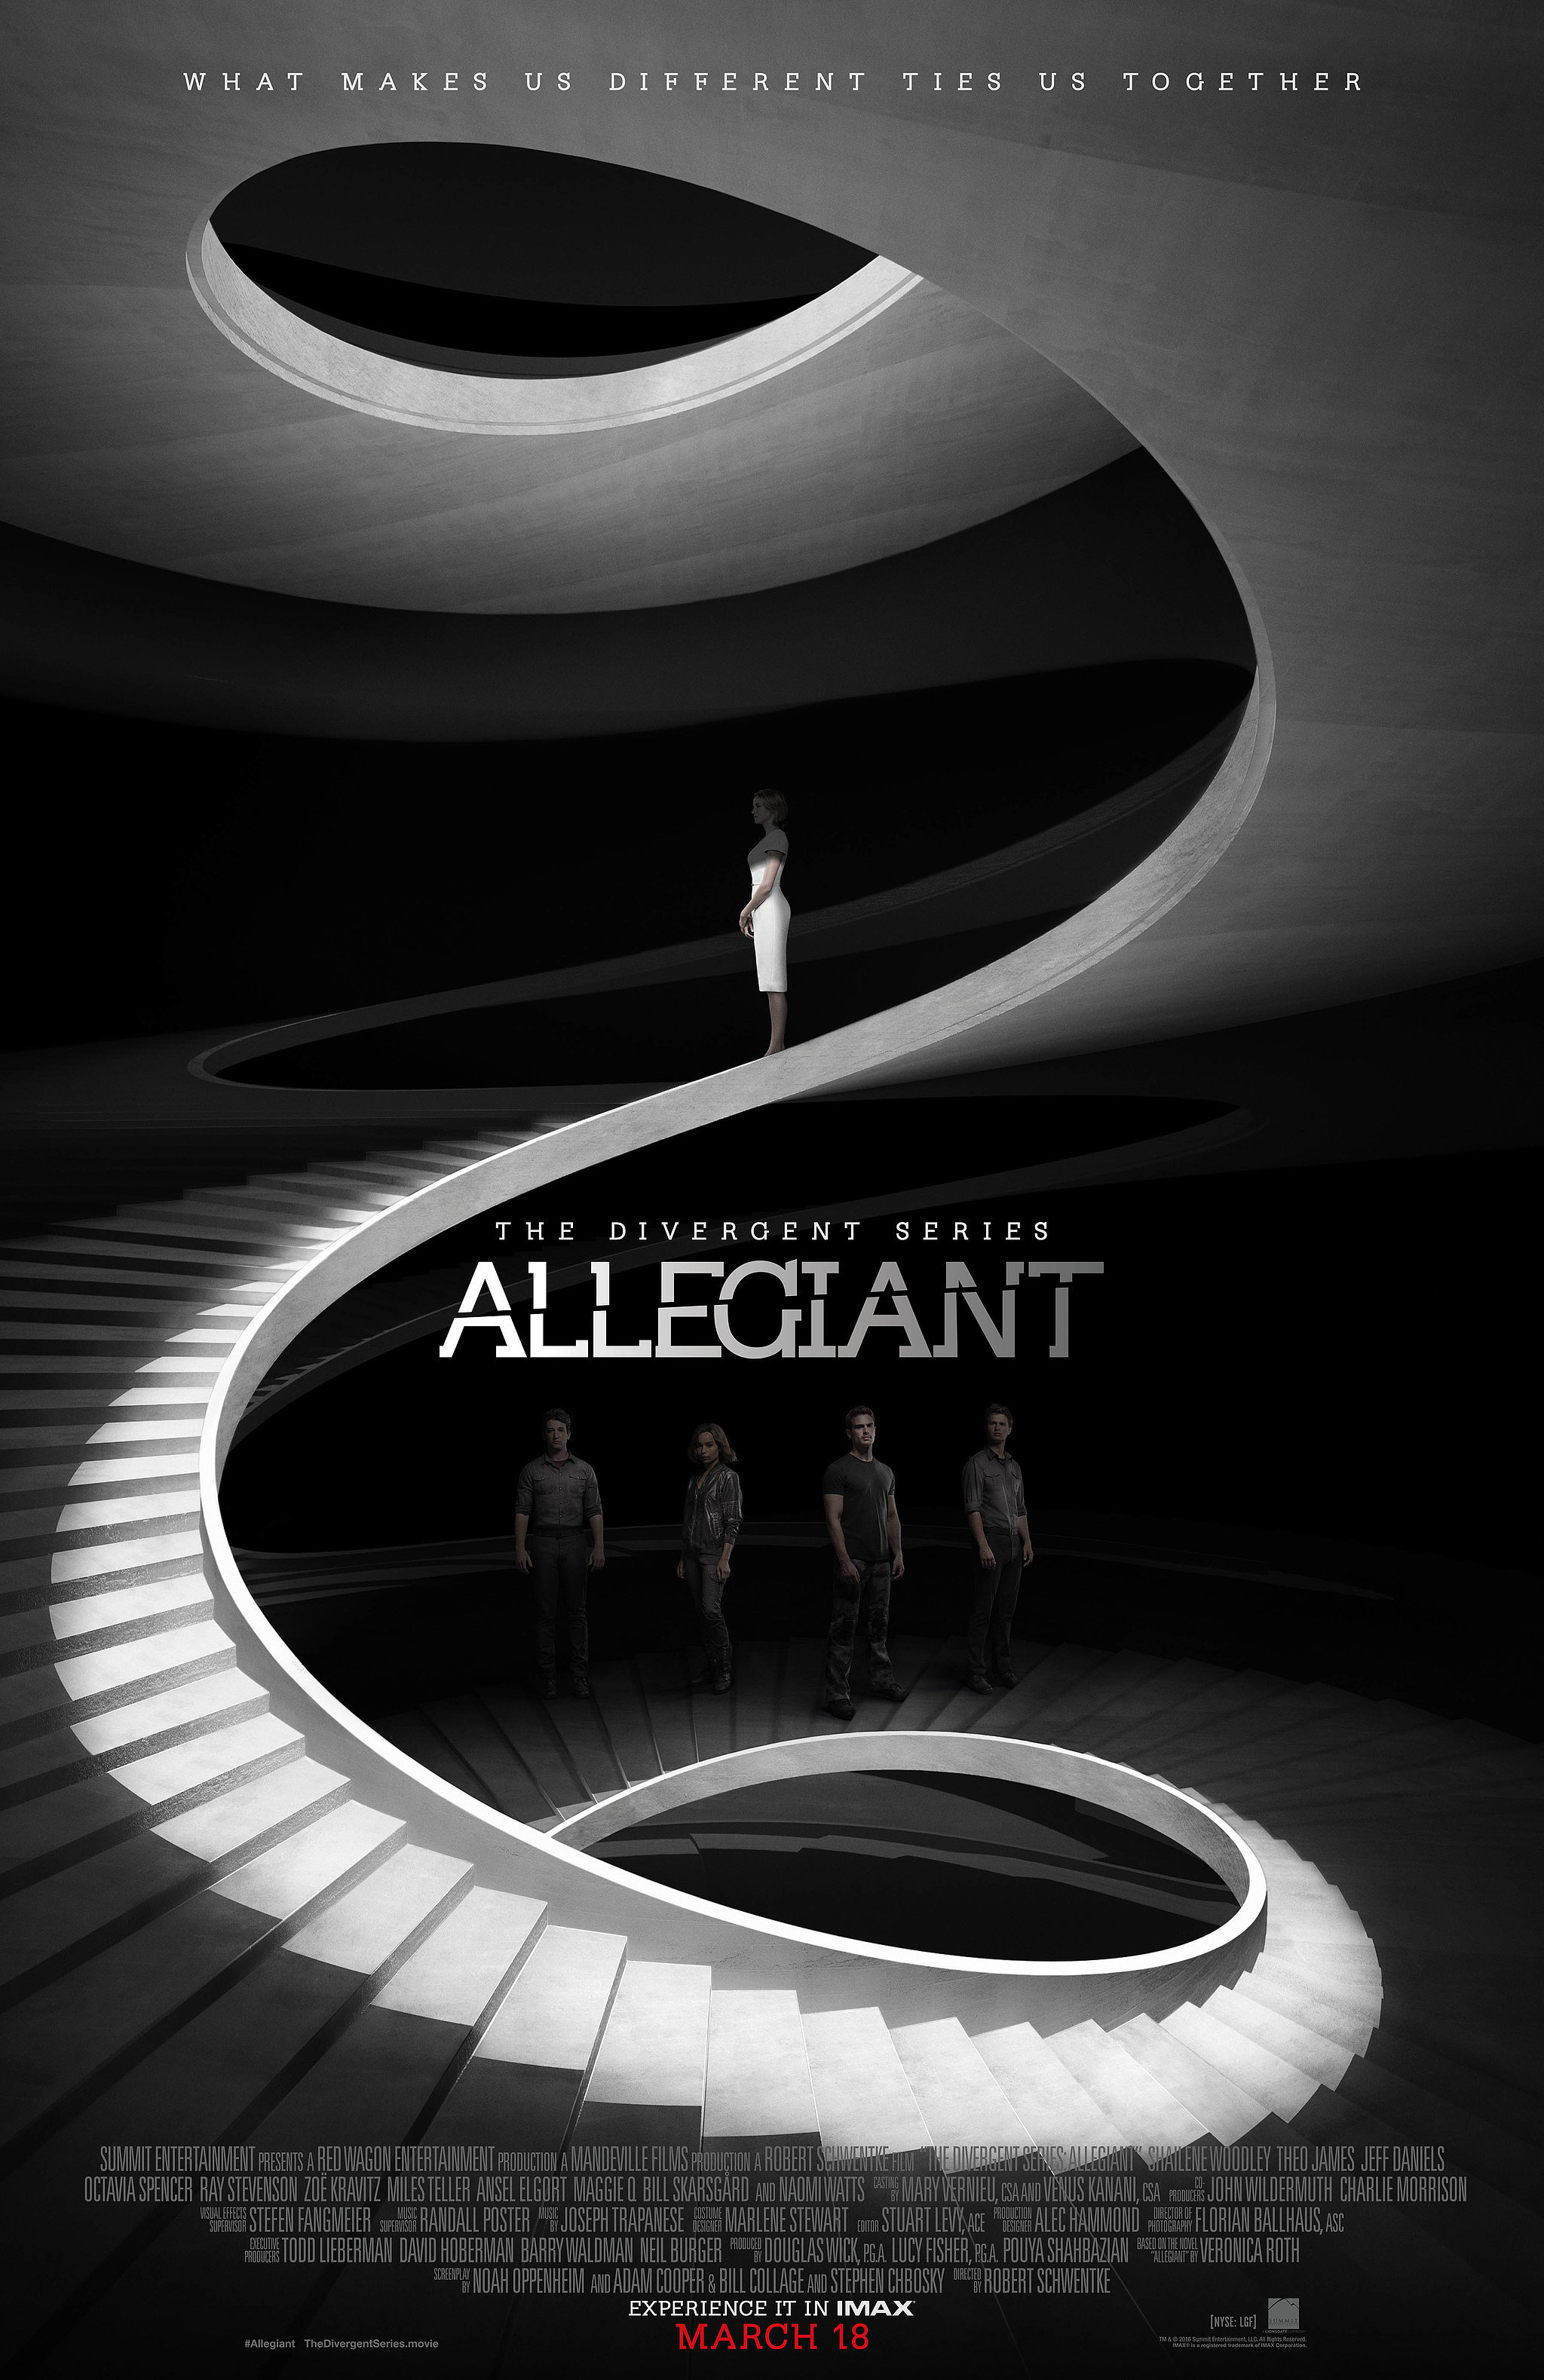 The Divergent Series Allegiant Exclusive Poster Popsugar Entertainment-2426